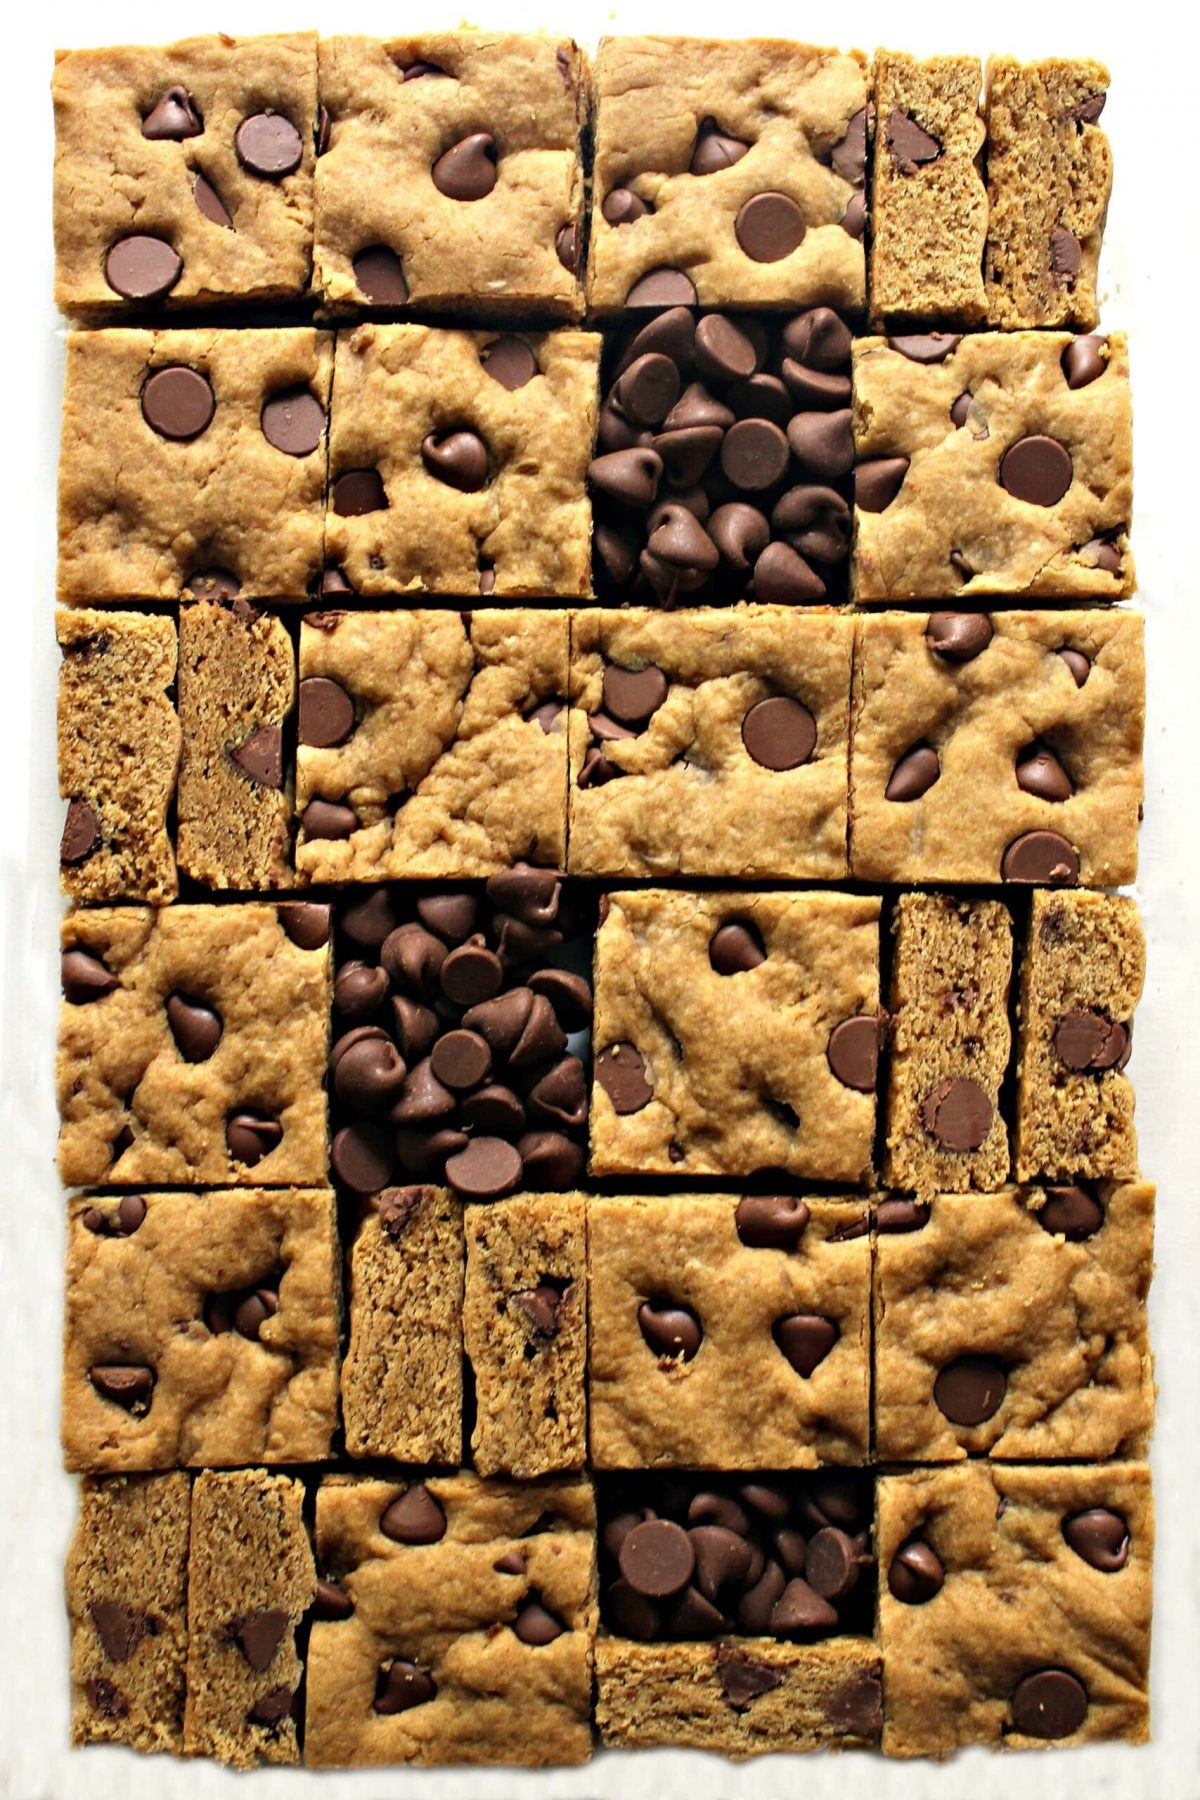 Peanut Butter Chocolate Chip Bars cut in squares.